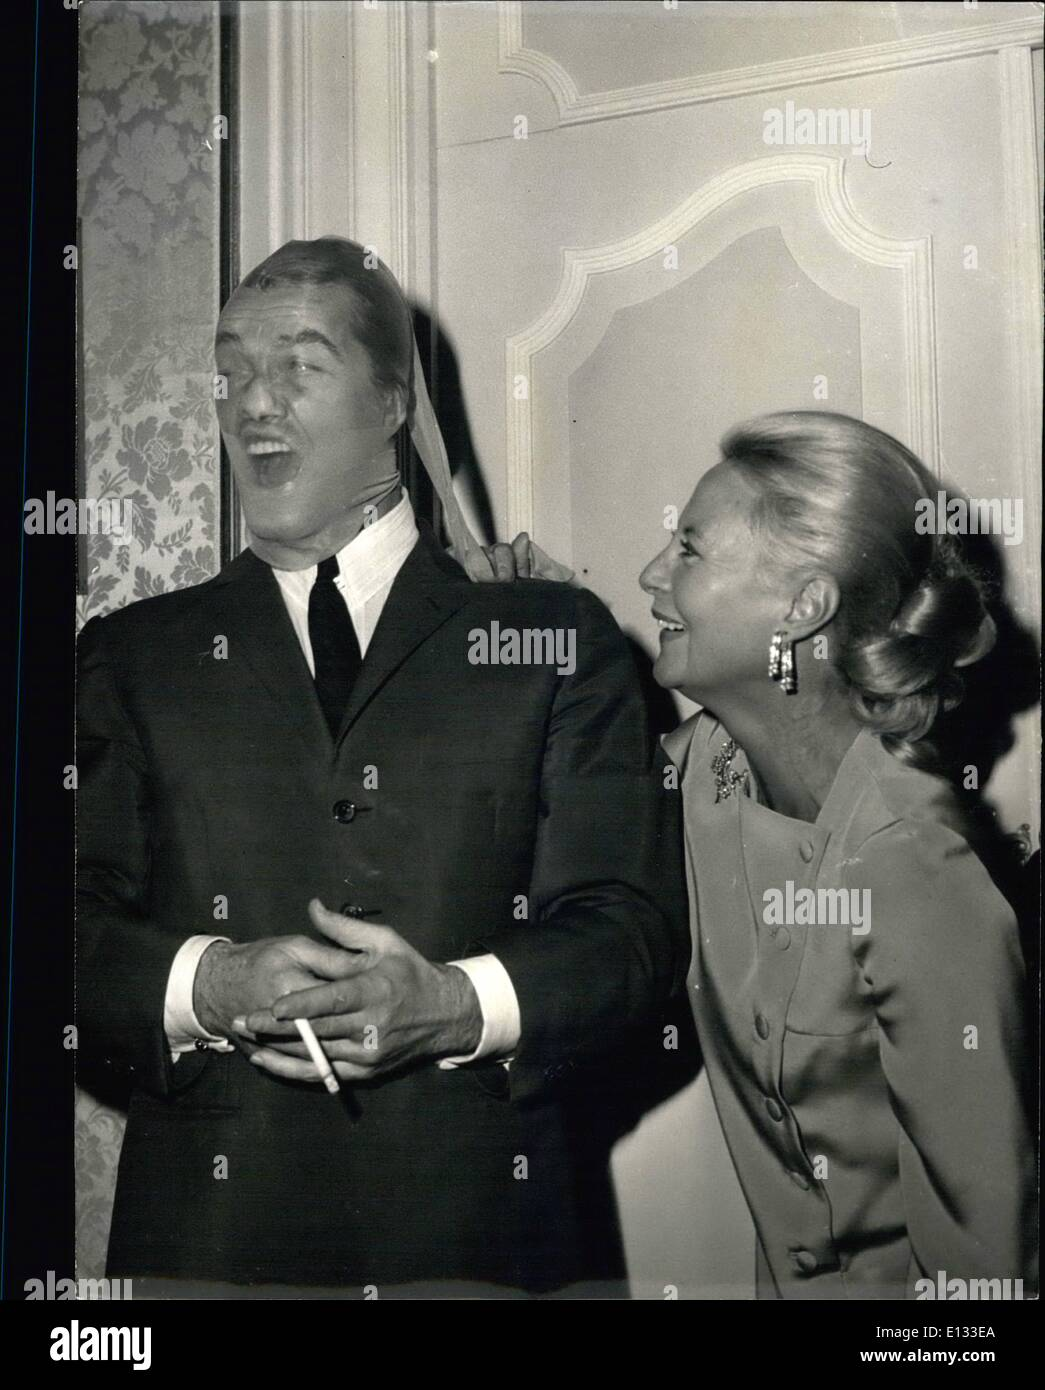 Feb. 26, 2012 - D'you know the man in the stocking?. Hardly recognizable but it is Jean Marais, the famous French Screen actor. Michele Morgan who apart from her professional activity as an actress, has opened a boutique, chose this unusual way of showing off a new line of stocking. Sept. 20/67 - Stock Image